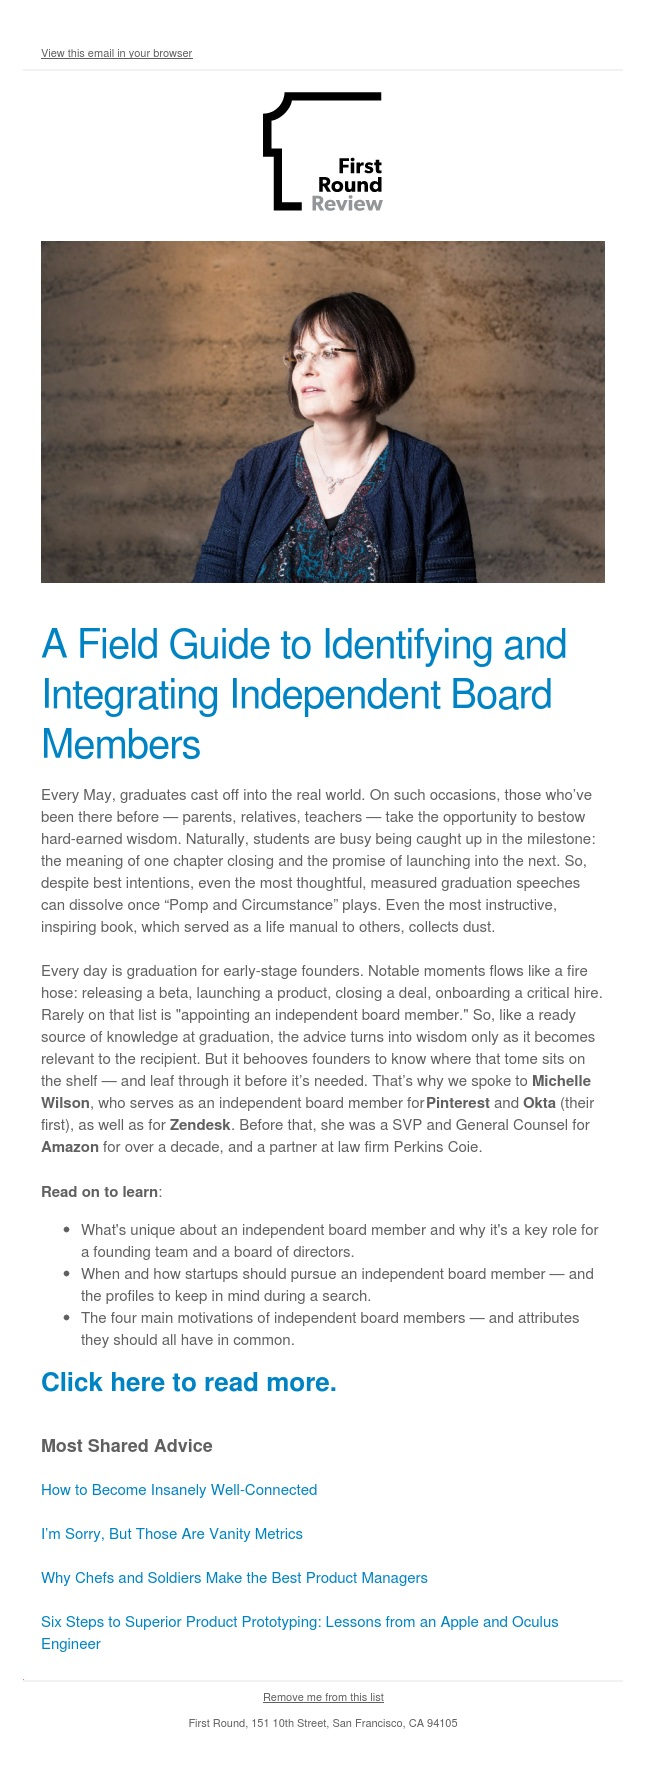 A Field Guide to Identifying and Integrating Independent Board Members